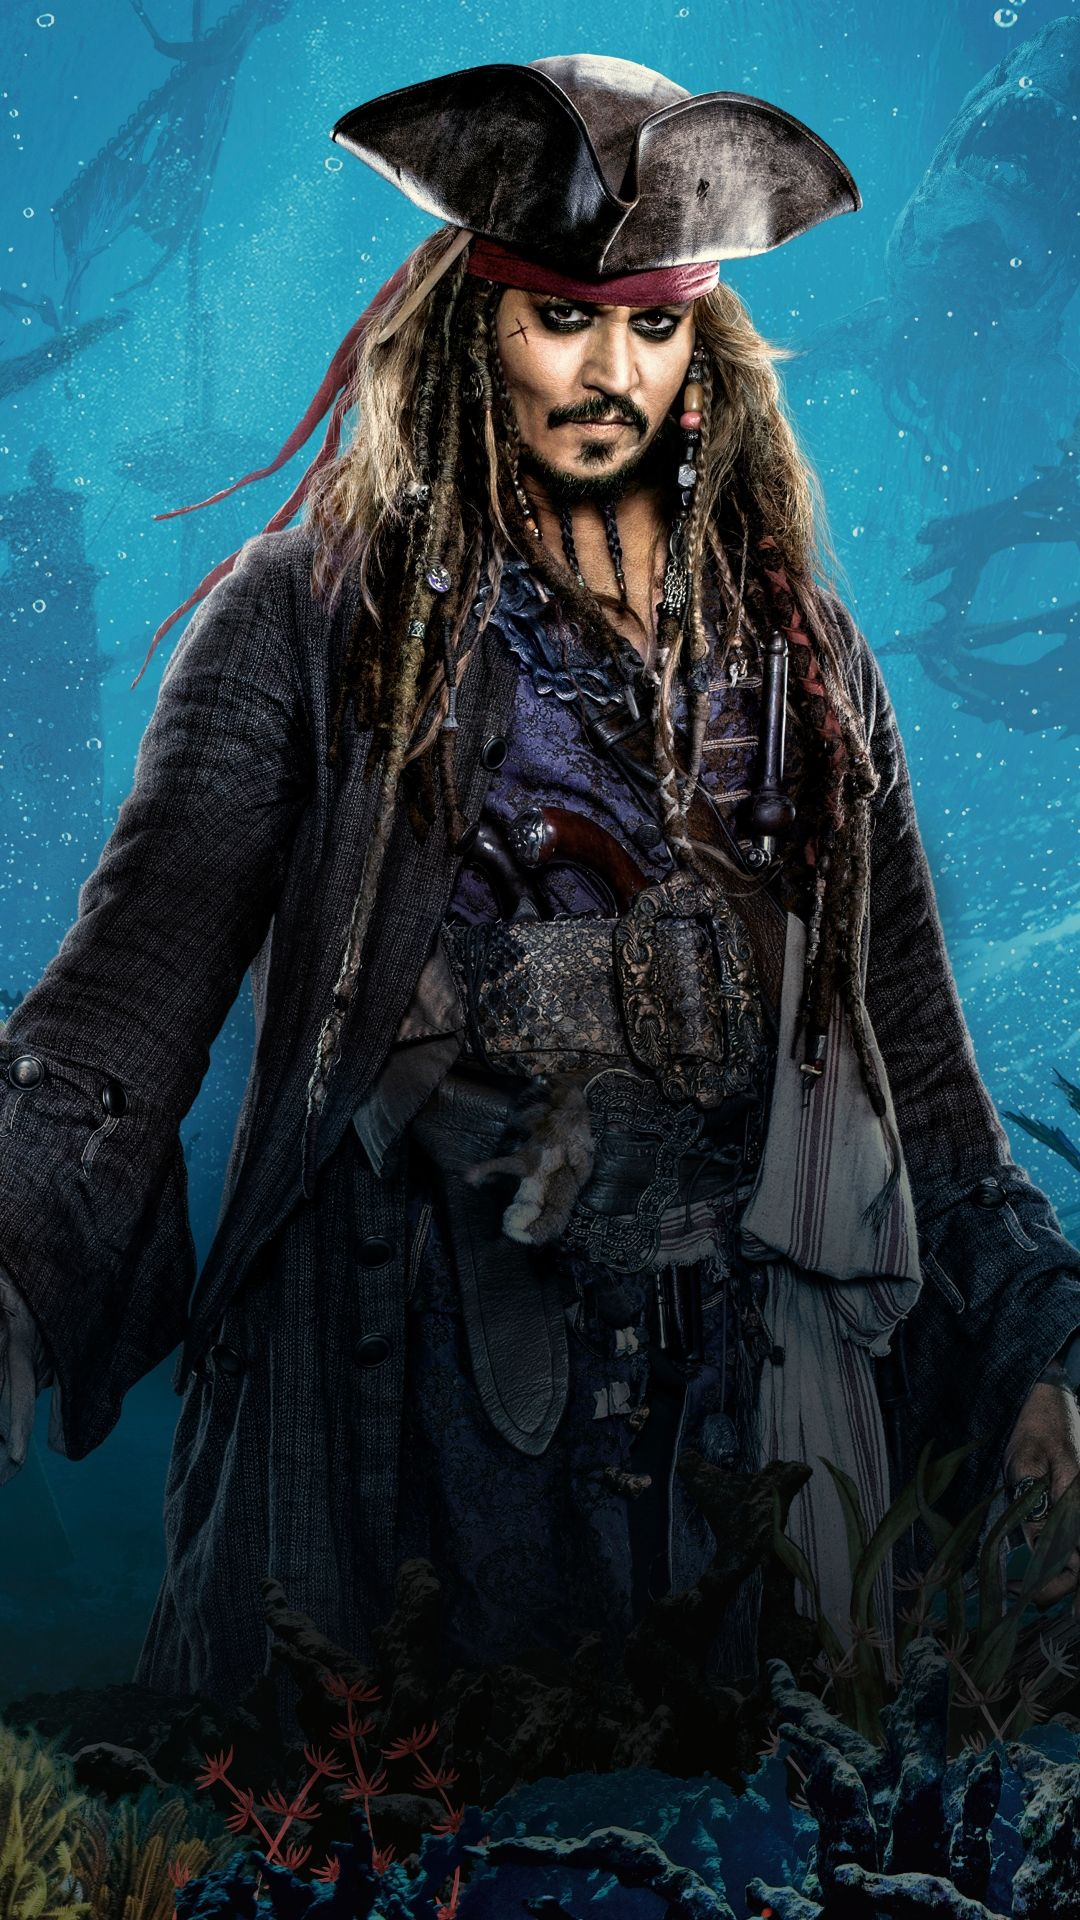 Pirates Of The Caribbean Dead Men Tell No Tales Will Turner Pirates Of The Caribbean Dead Men Tell No Tales Javier Captain Jack Sparrow Quotes Jack Sparrow Quotes Jack Sparrow Wallpaper